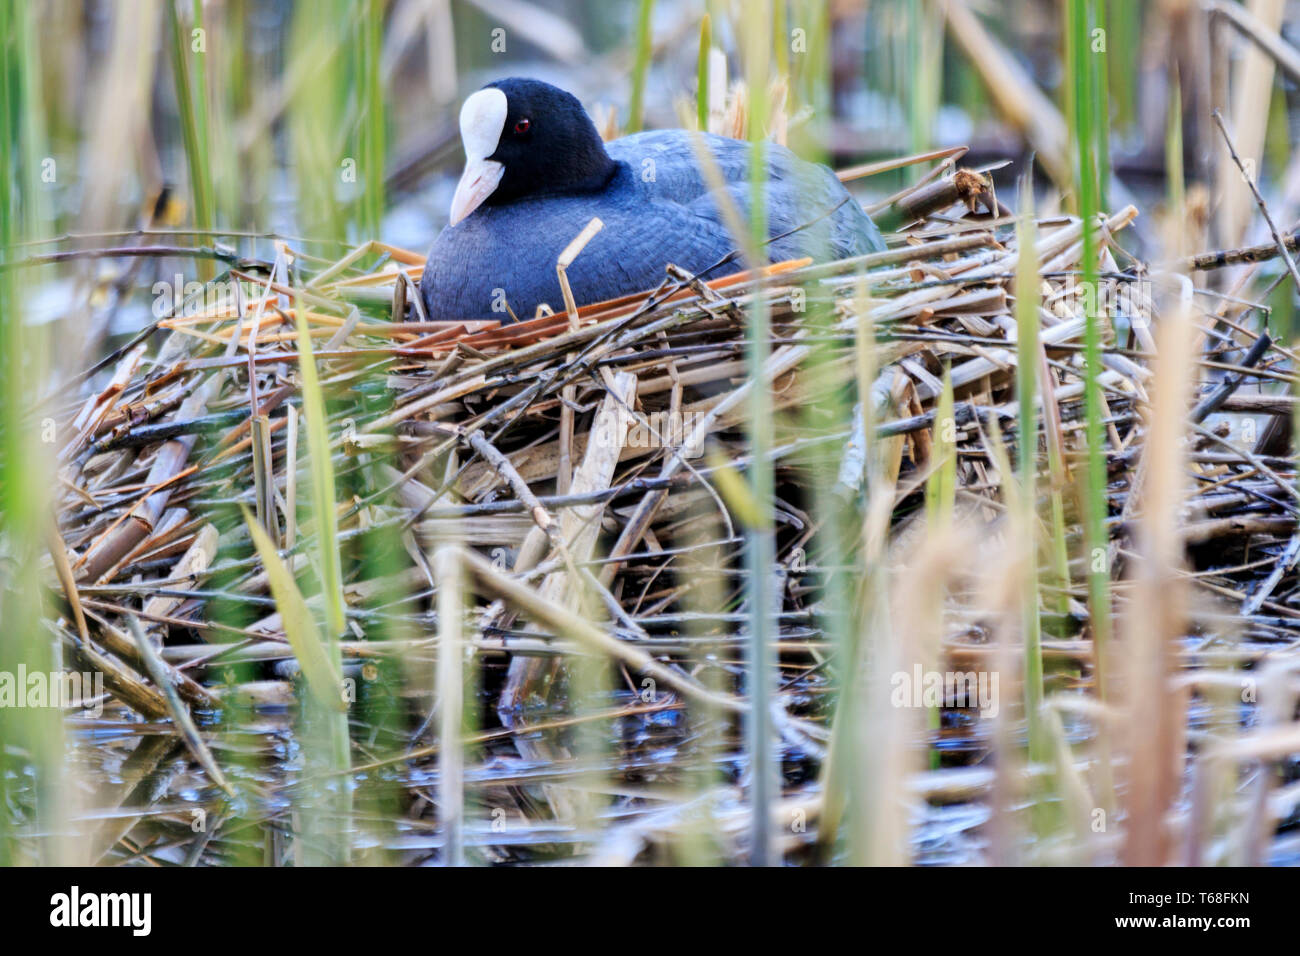 coot sitting on a nest of reeds - Stock Image